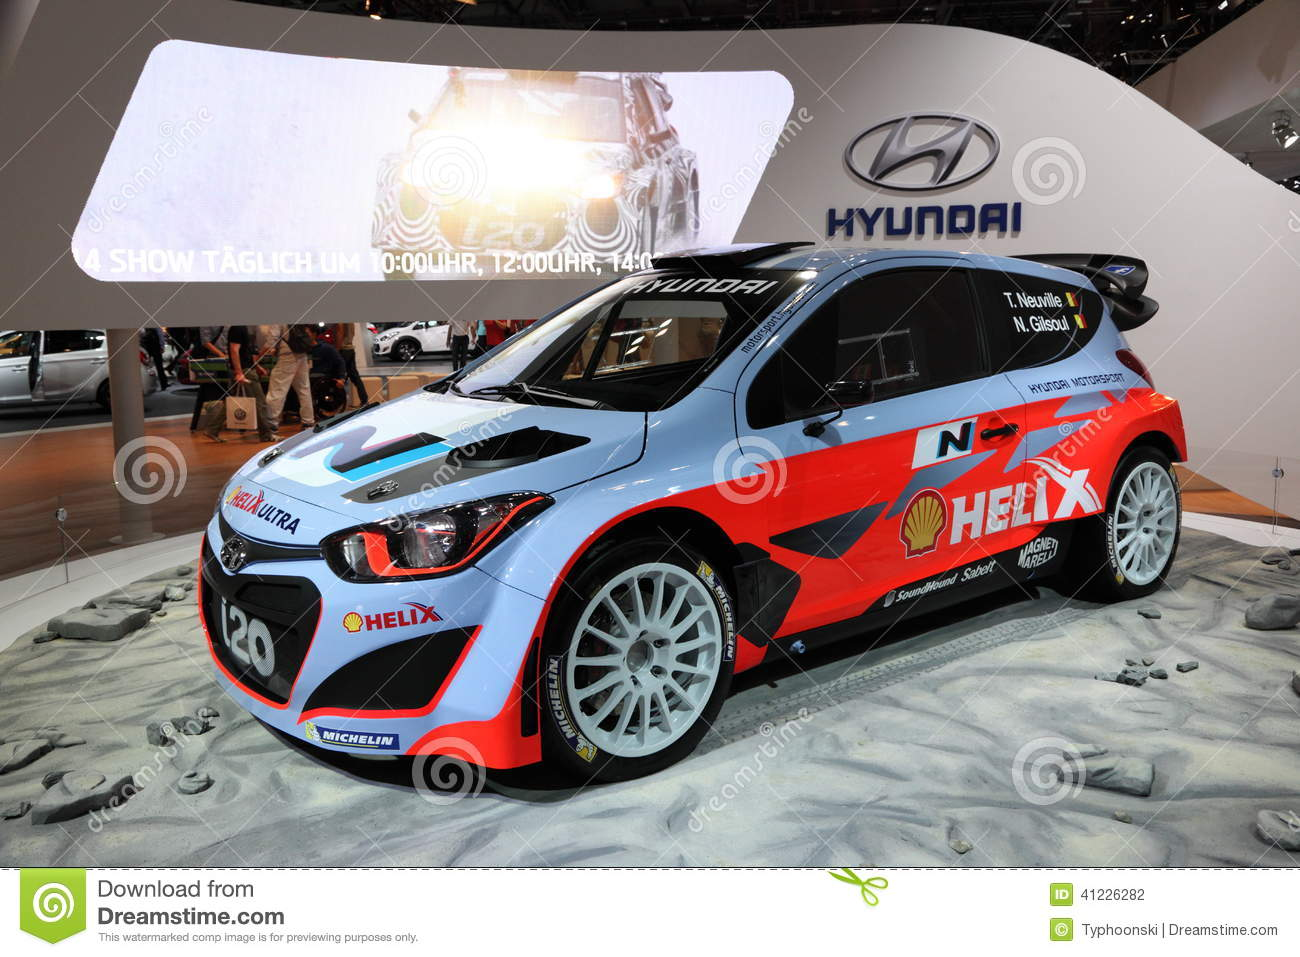 hyundai i20 wrc racing car editorial photography image. Black Bedroom Furniture Sets. Home Design Ideas